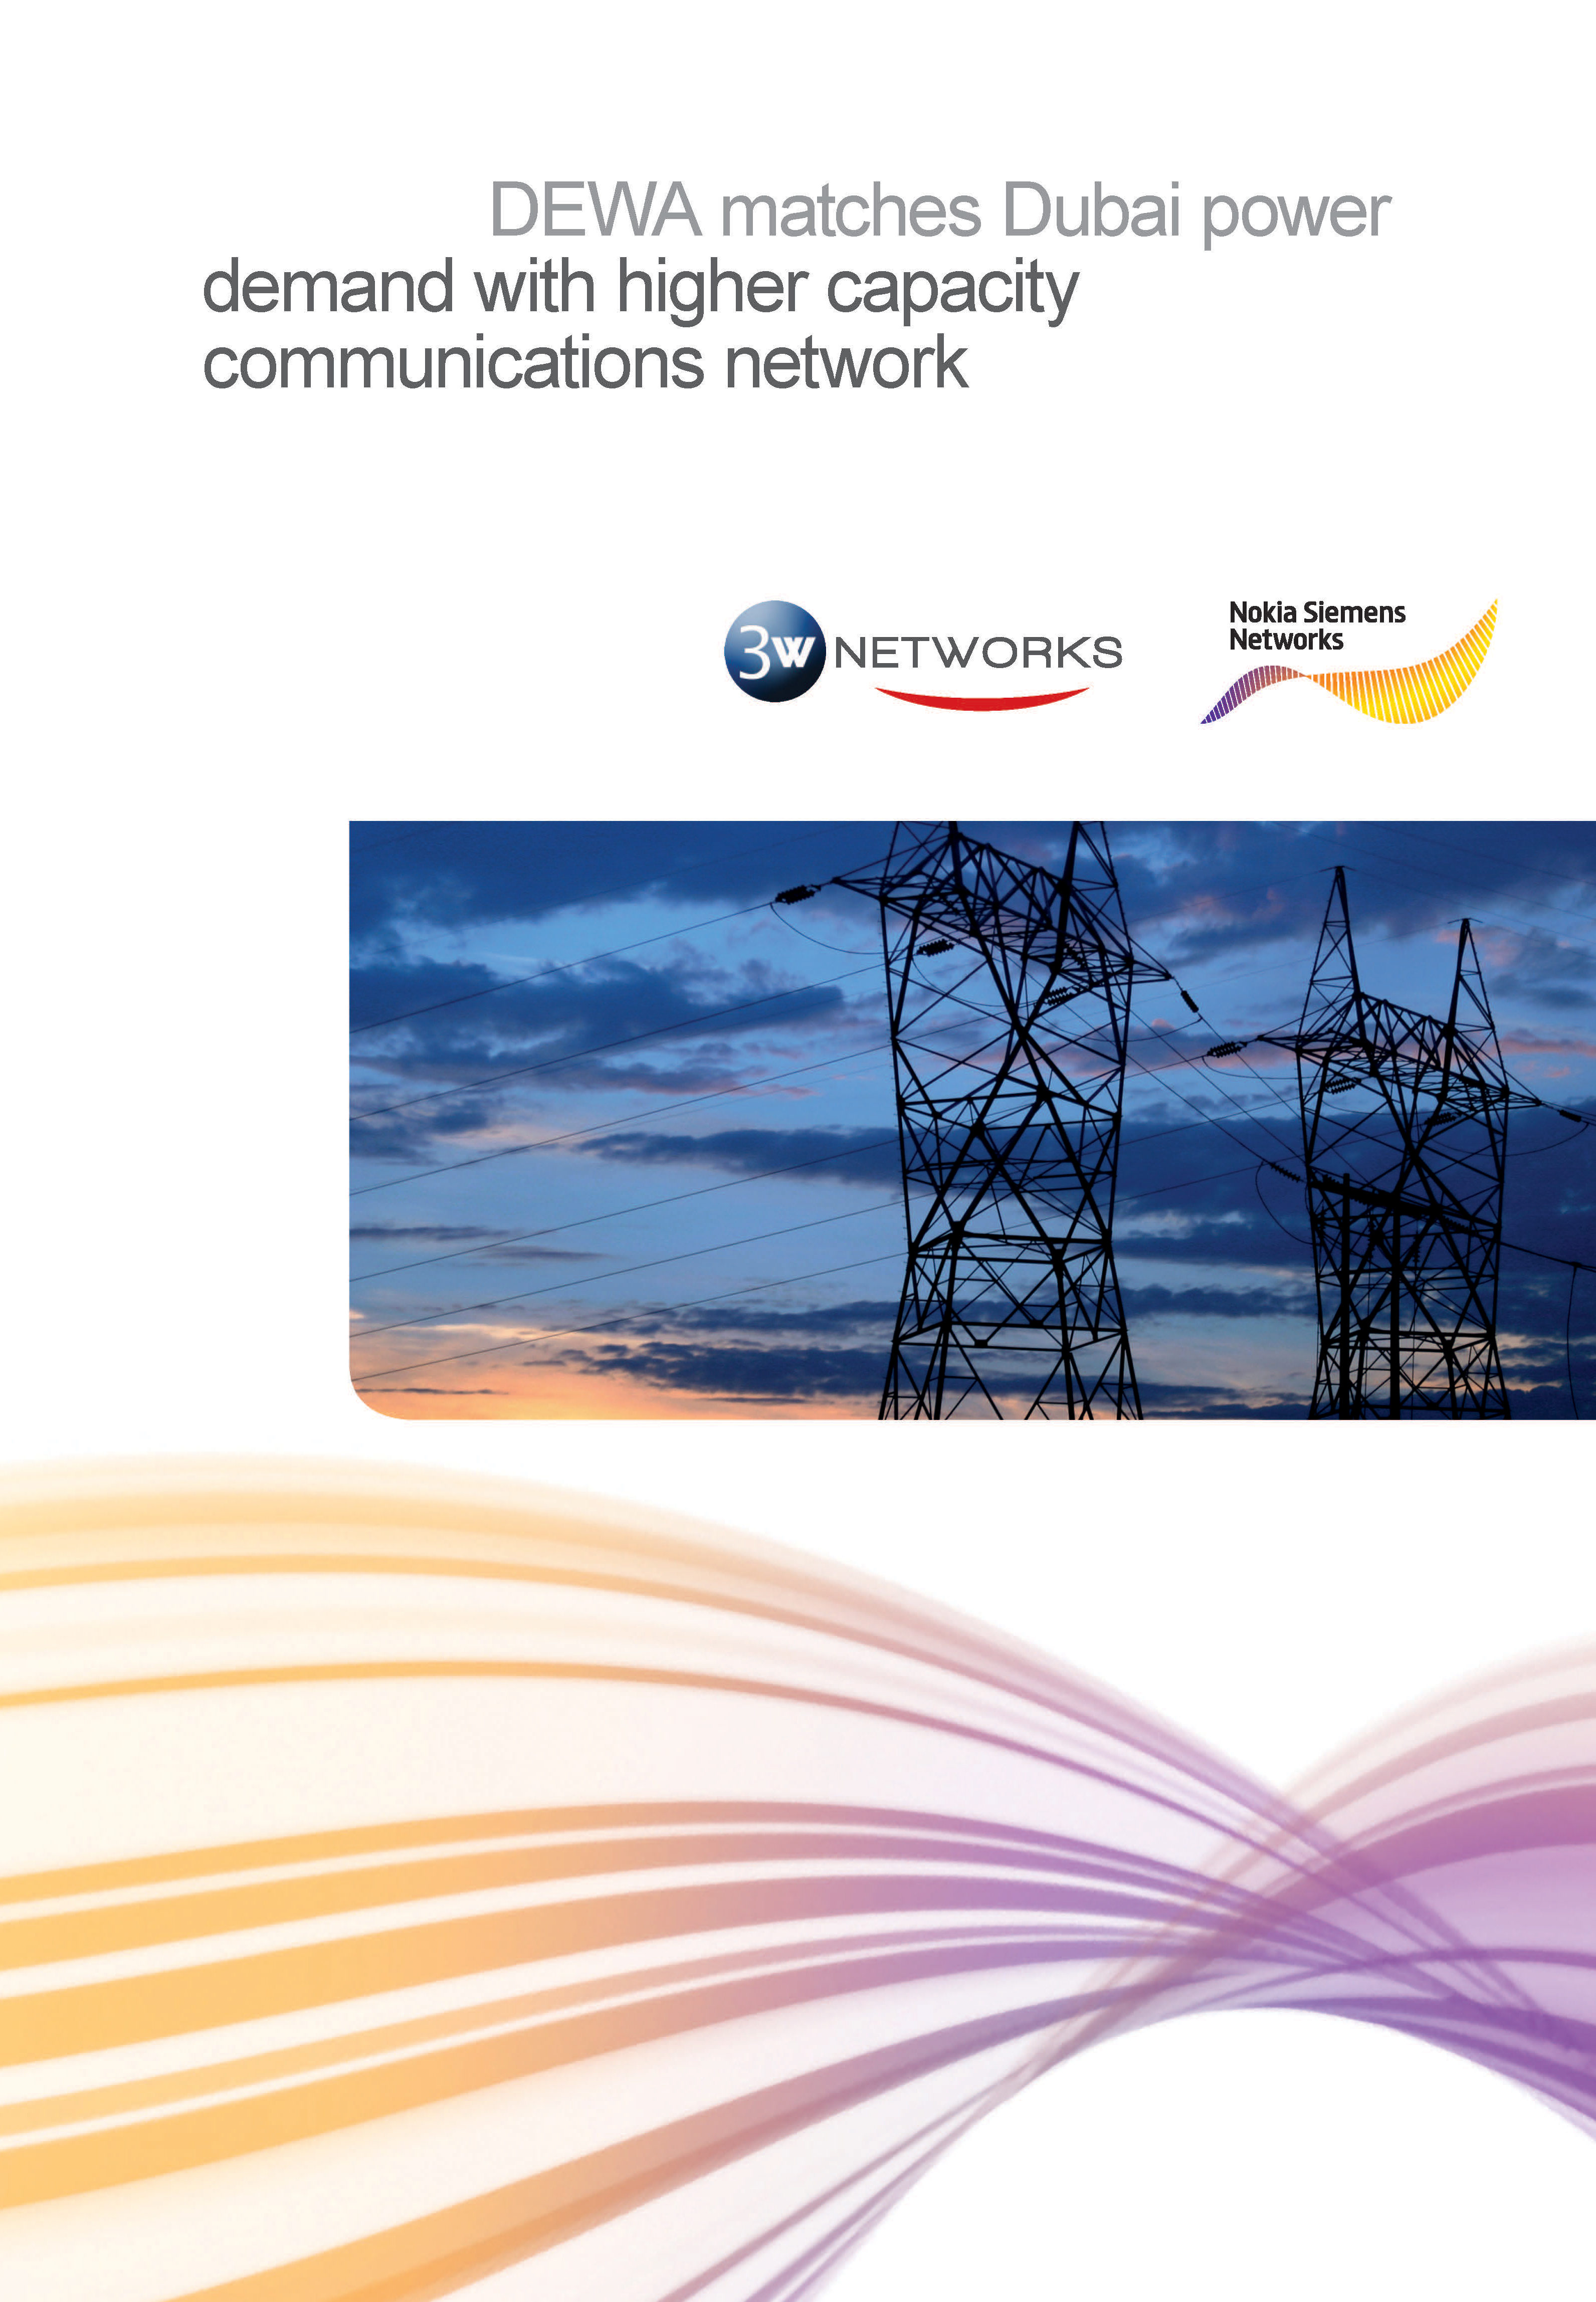 Our Project References - 3W Networks